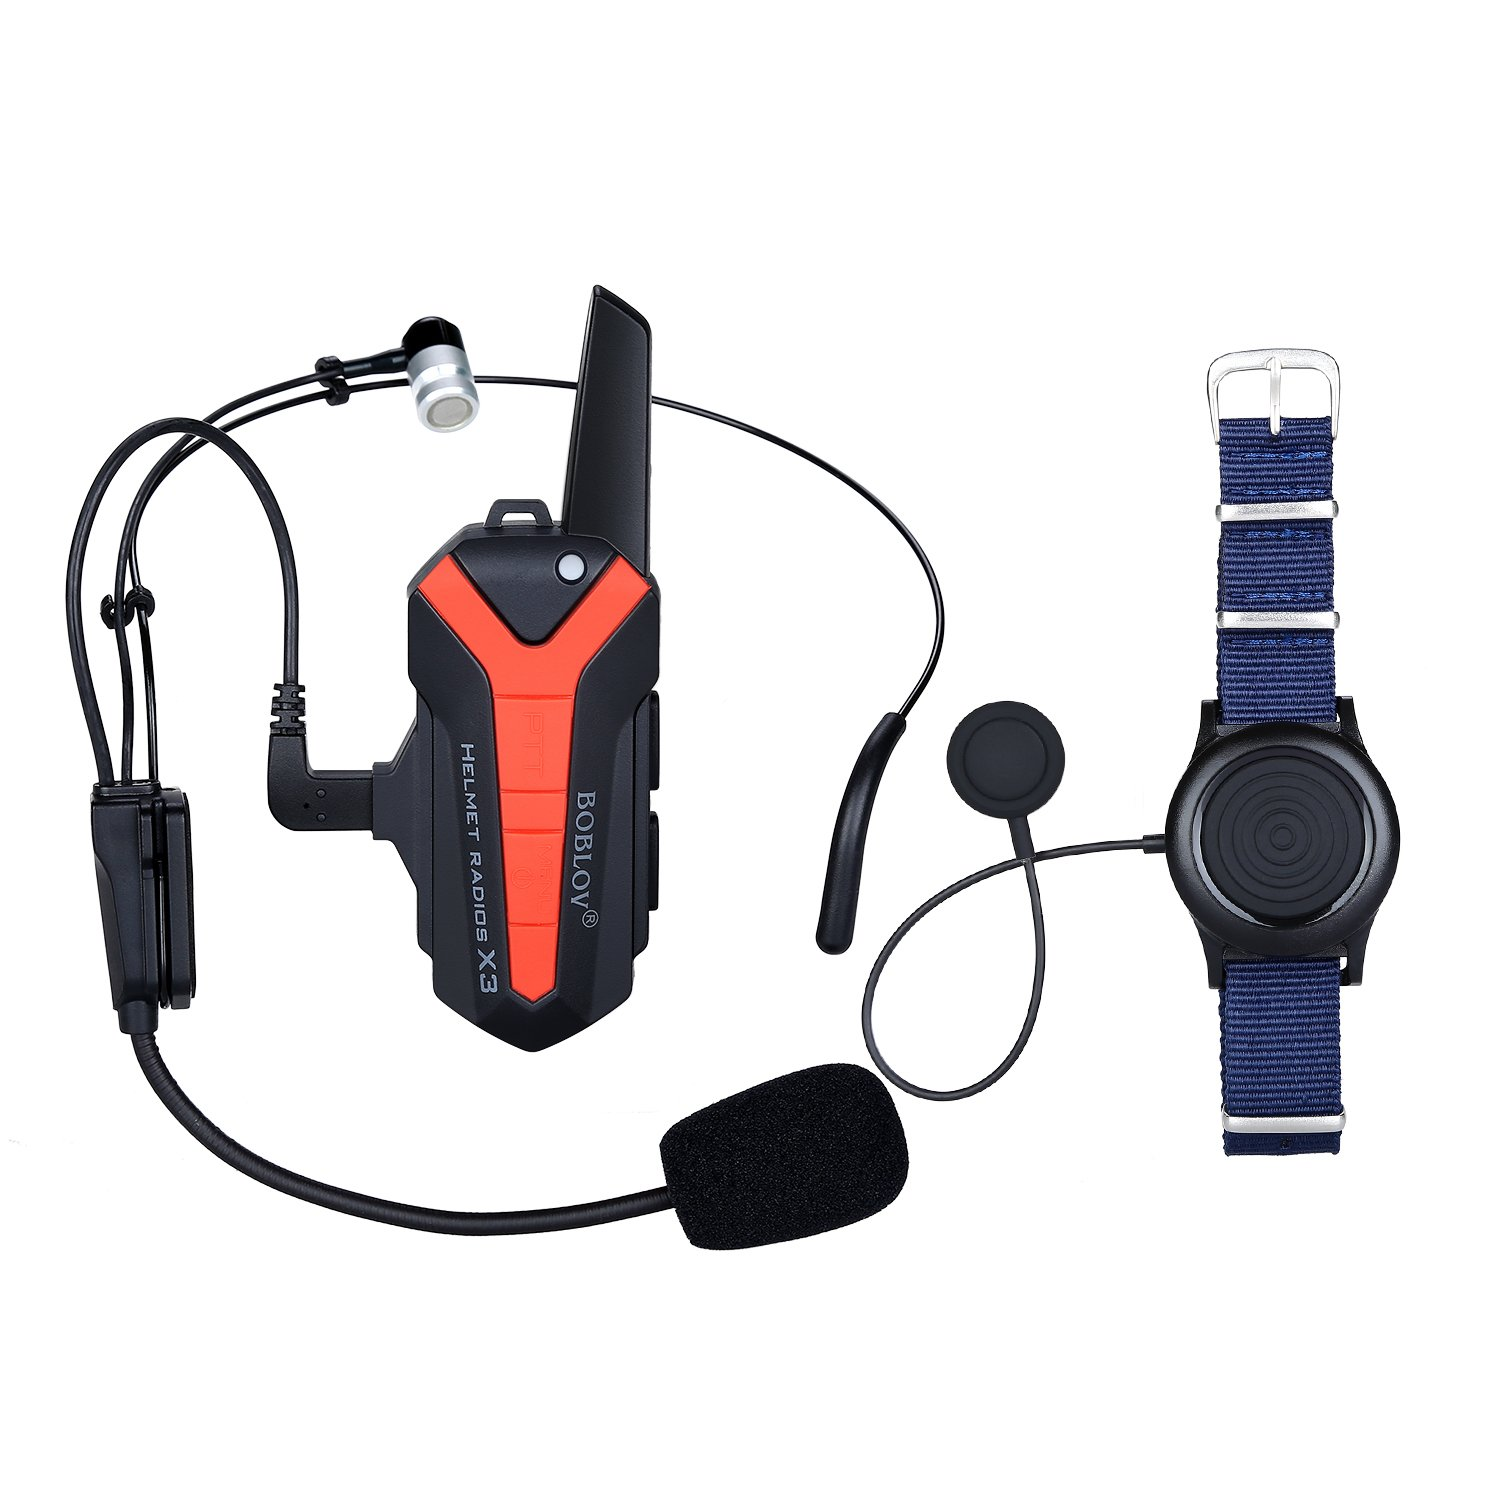 BOBLOV Helmet Headset Motorcycle Communication Intercome for Riding and Skiing 3KM Range Support Multiple Riders Walkie-Talkie with PTT Wireless Control 16 Channels Waterproof (For half helmet)